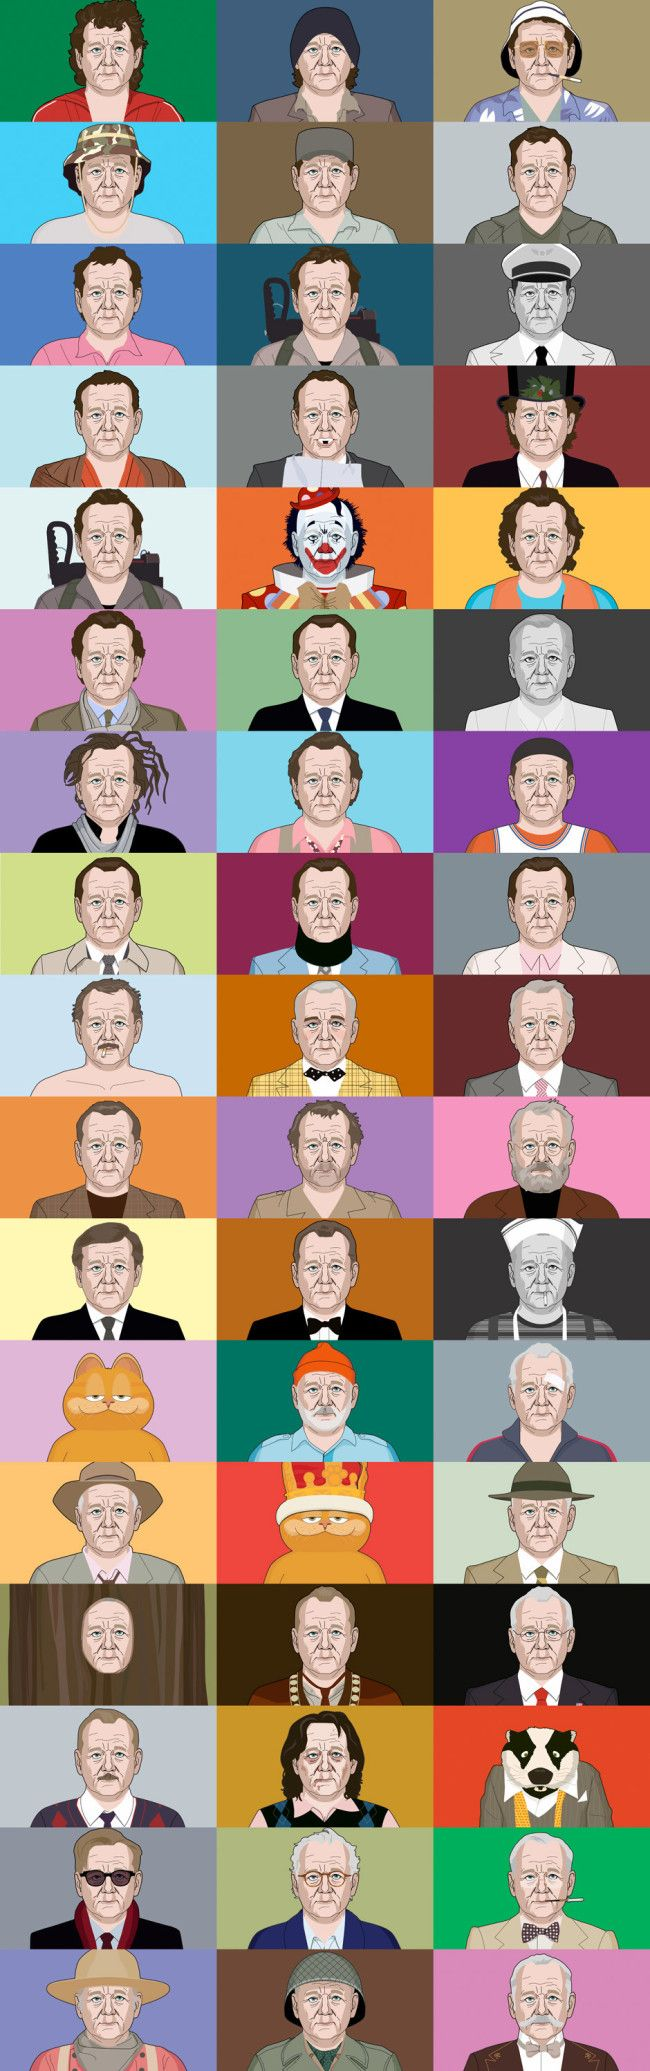 You'd have to travel a long, long way to find someone who didn't love Bill Murray. So, hail Steve Murray! This dedicated Bill Murray fan has created an entire collection of Bill Murray characters, in full costume, too. From Murray's epic Ghostbusters role to The Grand Budapest Hotel, this series of Bill Murrays has it […]